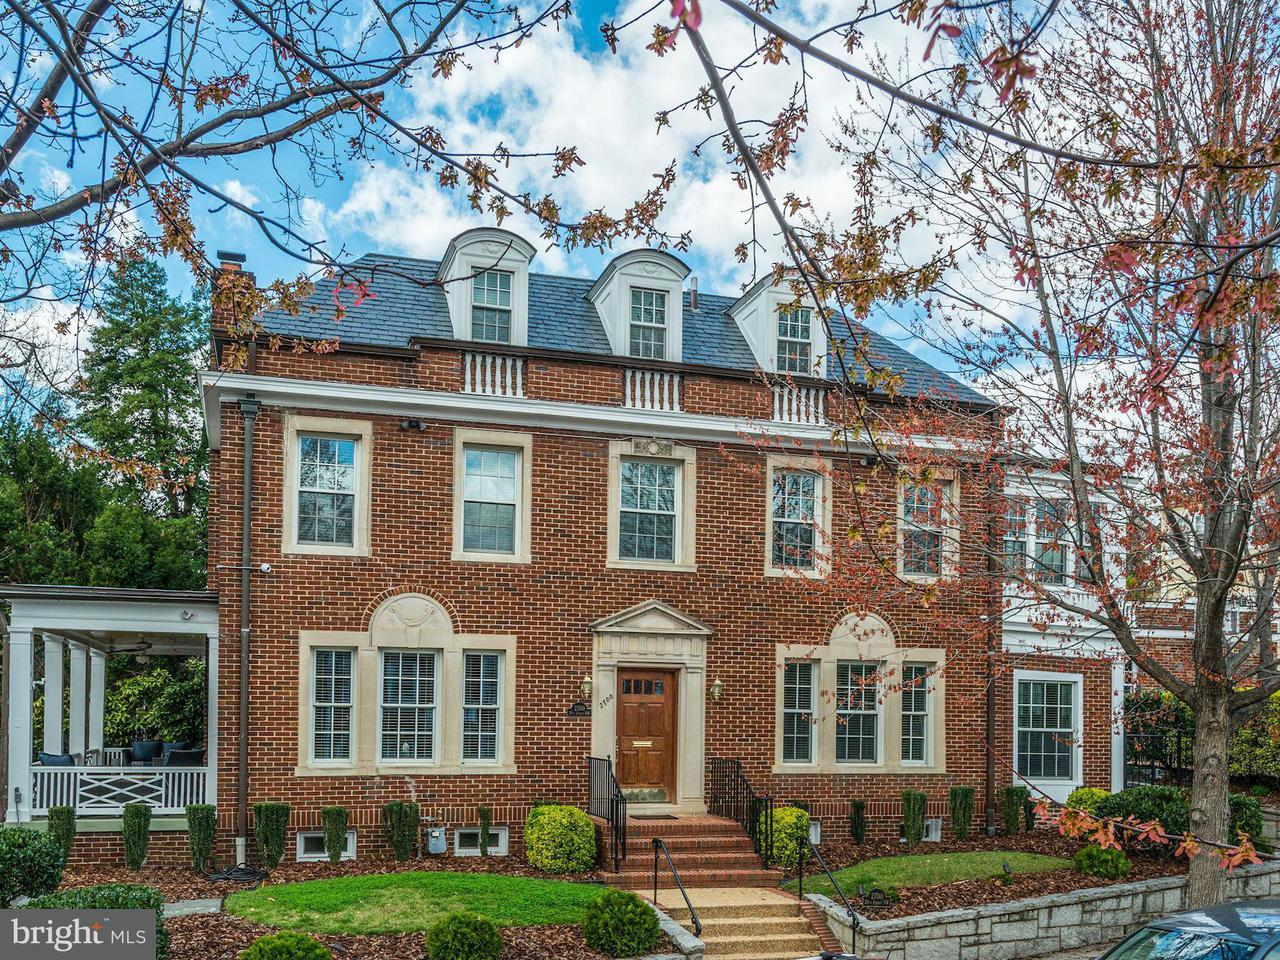 Single Family for Sale at 2700 28th St NW Washington, District Of Columbia 20008 United States